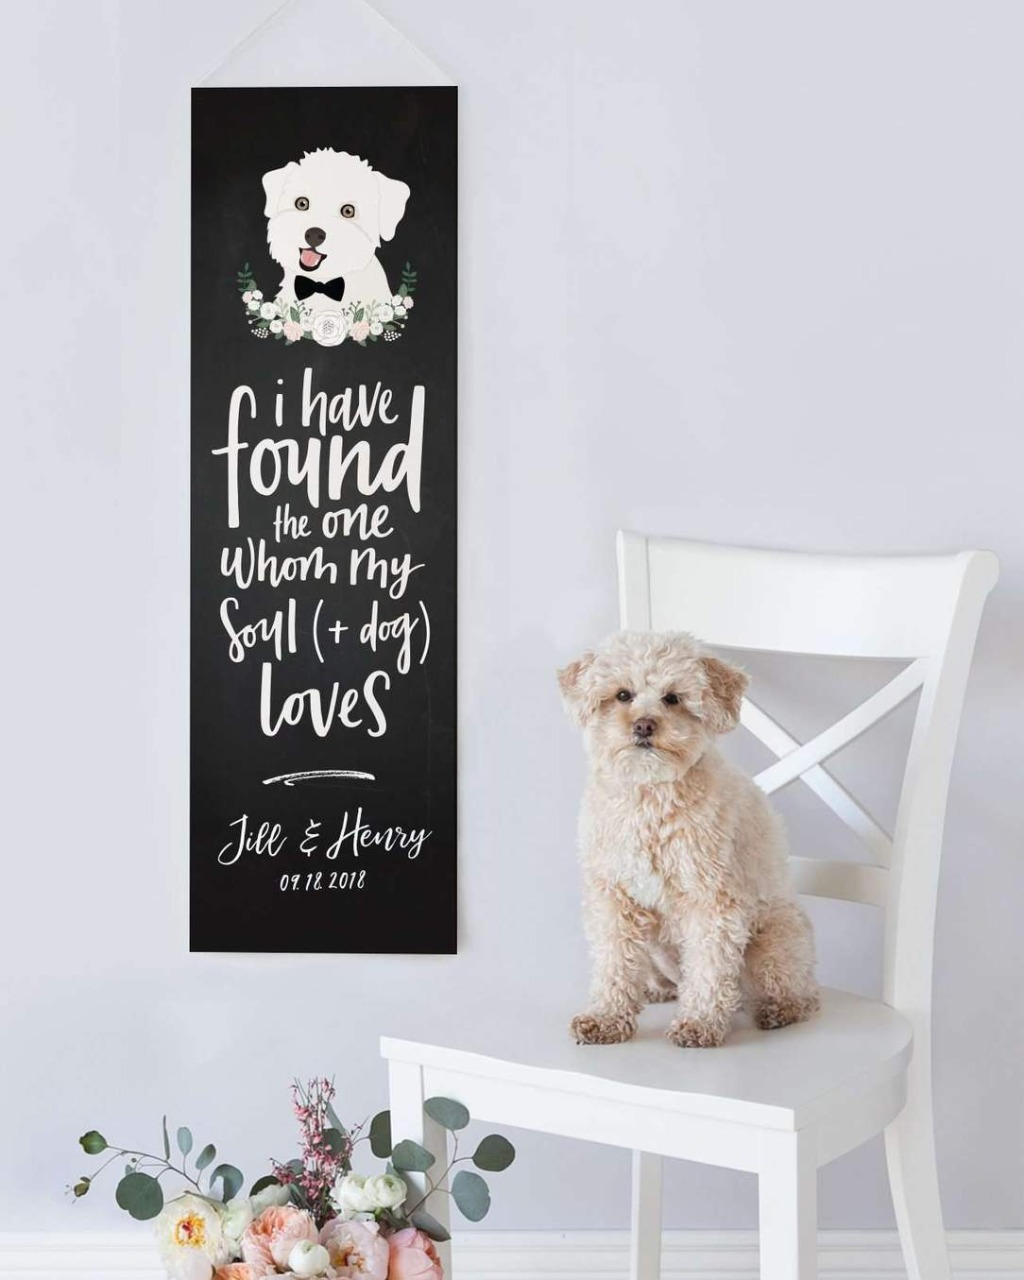 We LOVE reception decor, especially when it comes to pets!! This Chalkboard Wedding Banner with Pet Portrait from Miss Design Berry